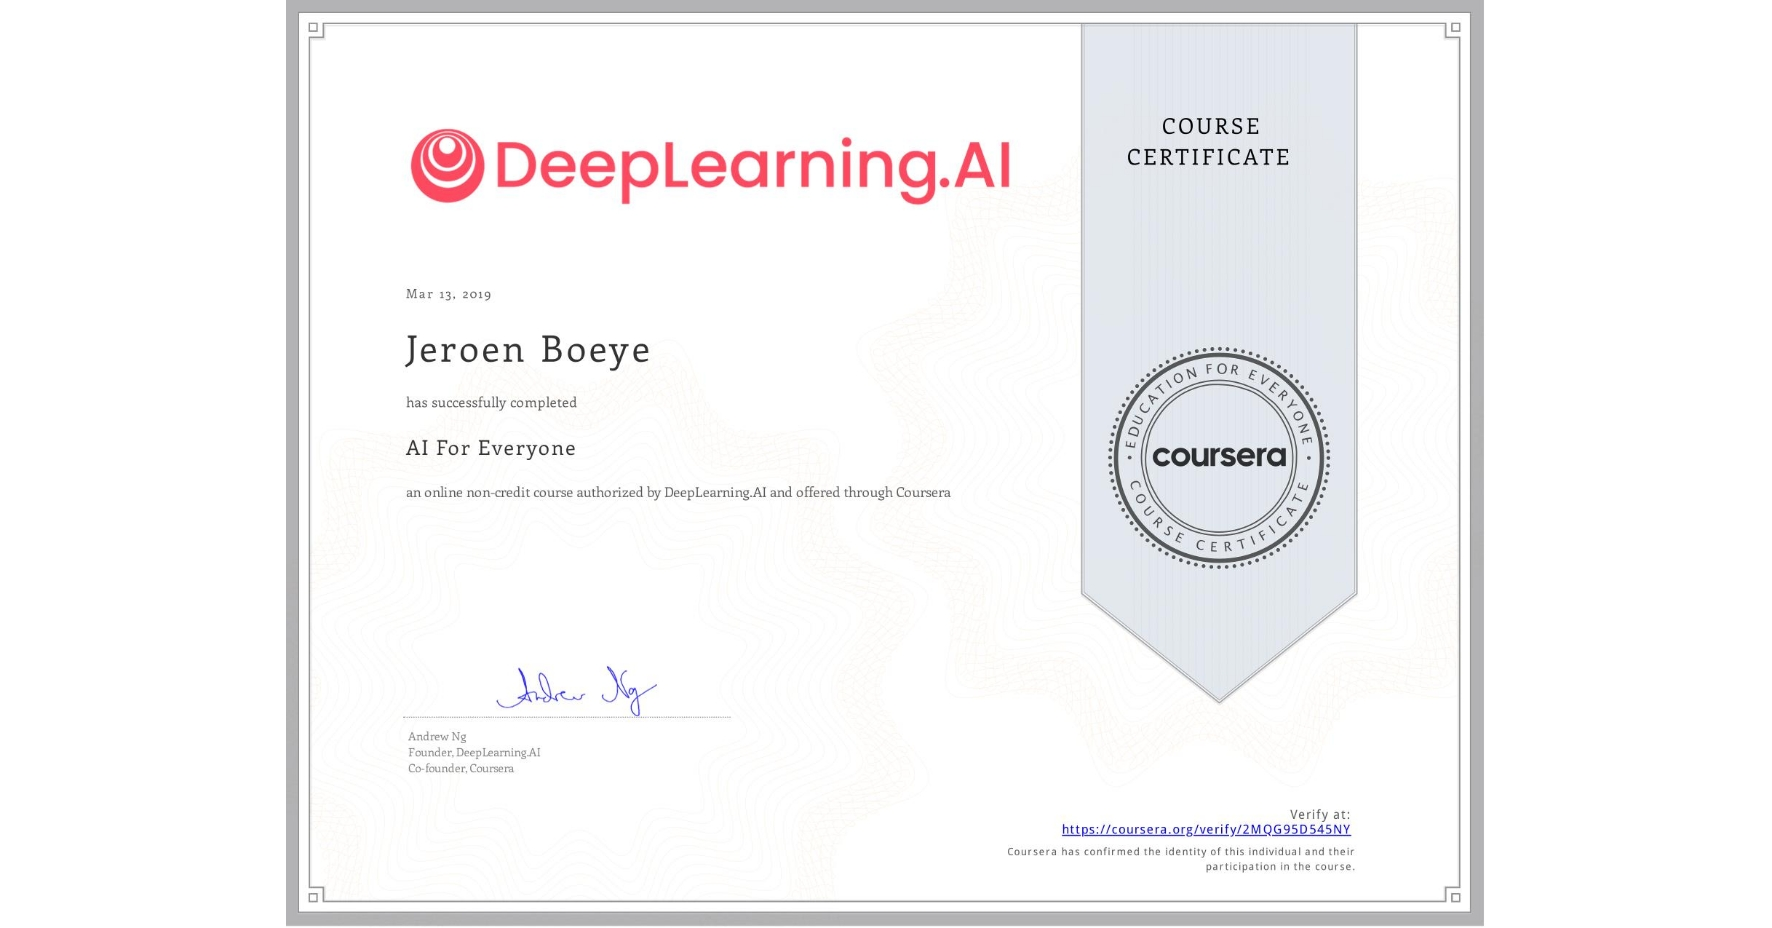 View certificate for Jeroen Boeye, AI For Everyone, an online non-credit course authorized by DeepLearning.AI and offered through Coursera